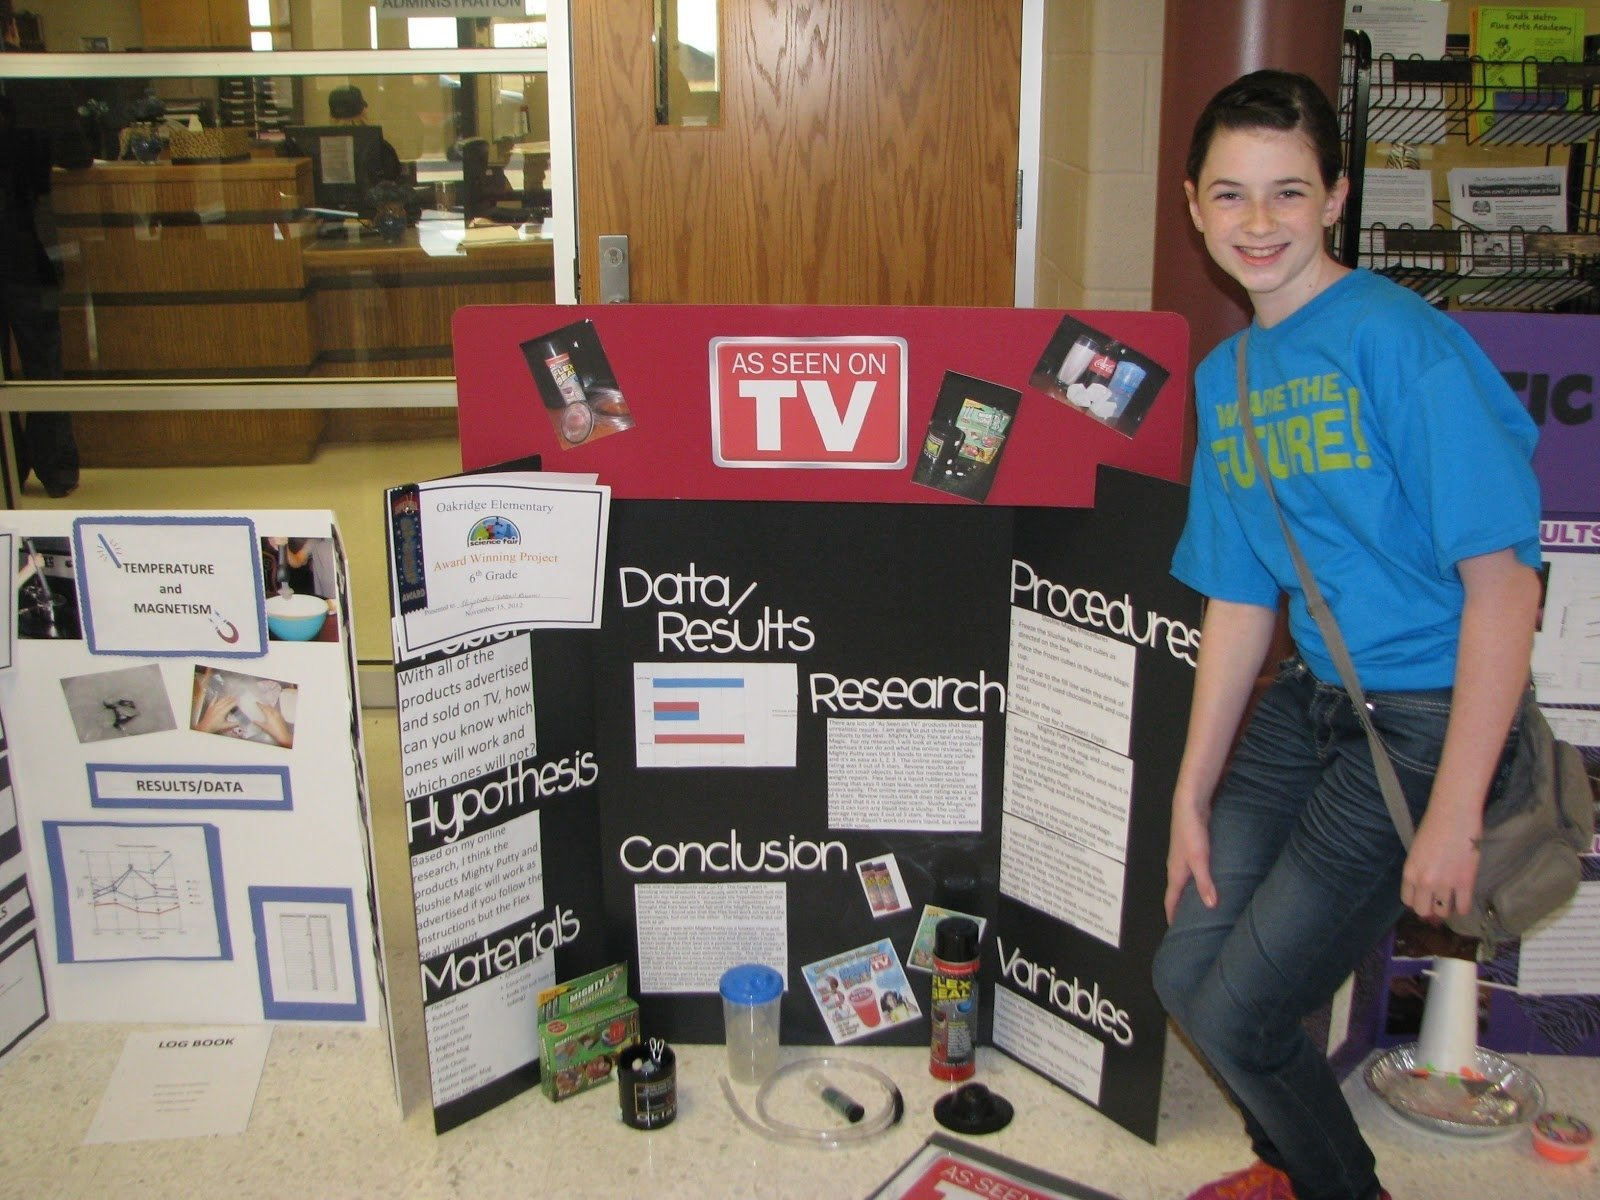 10 Fabulous Science Fair Projects Ideas For 5Th Grade this is diy wood science fair projects 5 grade lebouf 5